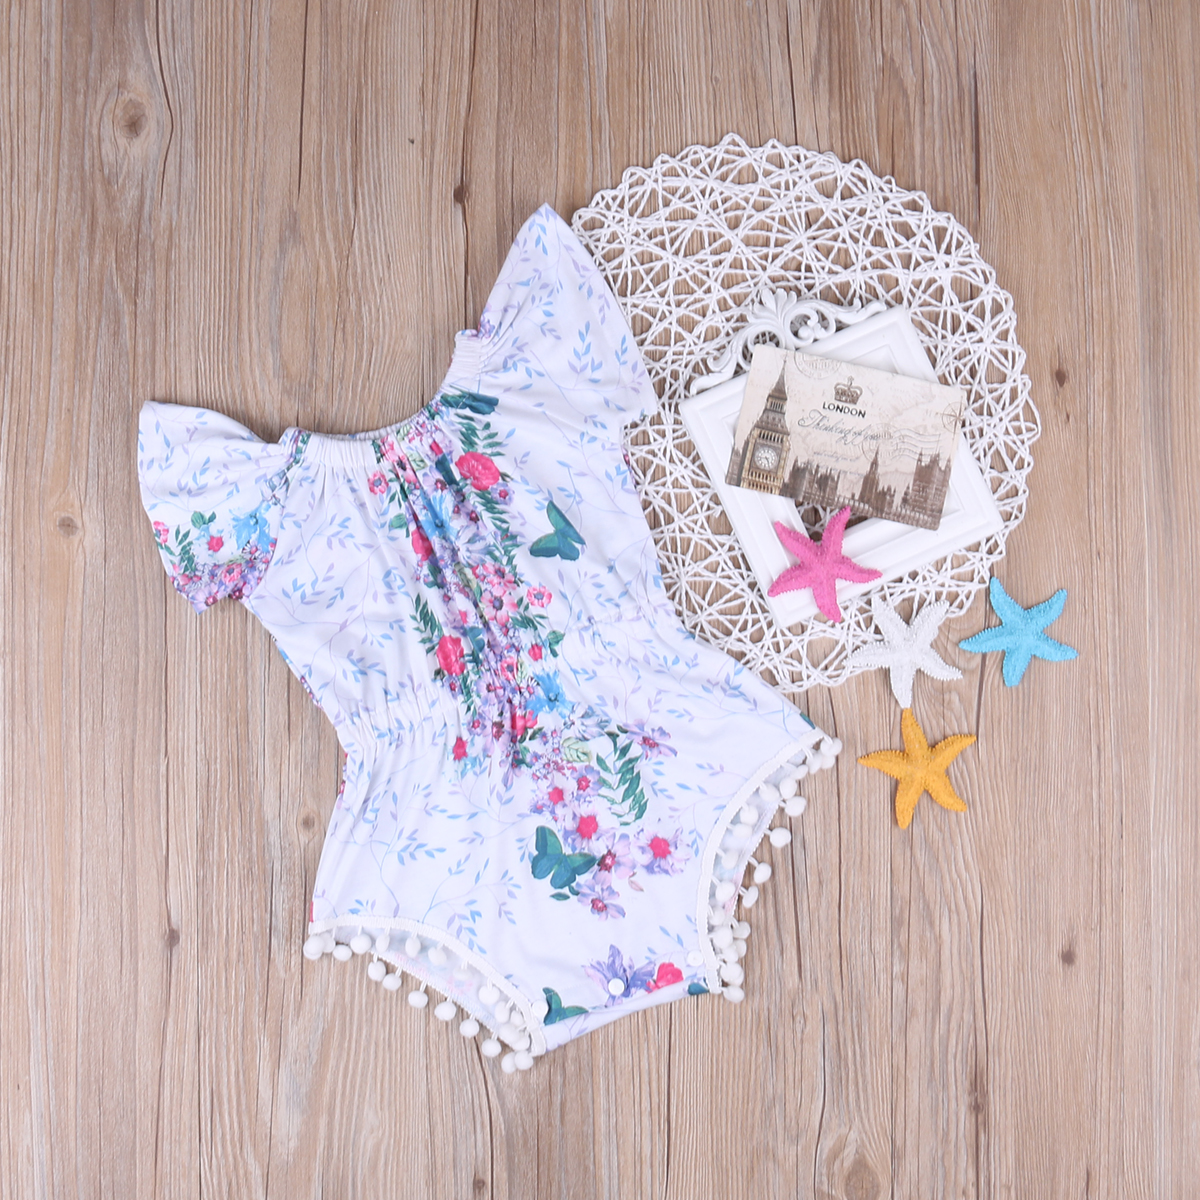 2017 Summer Floral Baby Girl Romper Clothes Cute Newborn Infant Bebes Tassel Rompers Toddler Kids Jumpsuit Outfit Sunsuit 0-24M 2017 summer newborn baby girl white lace romper jumpsuit floral infant clothes outfit sunsuit